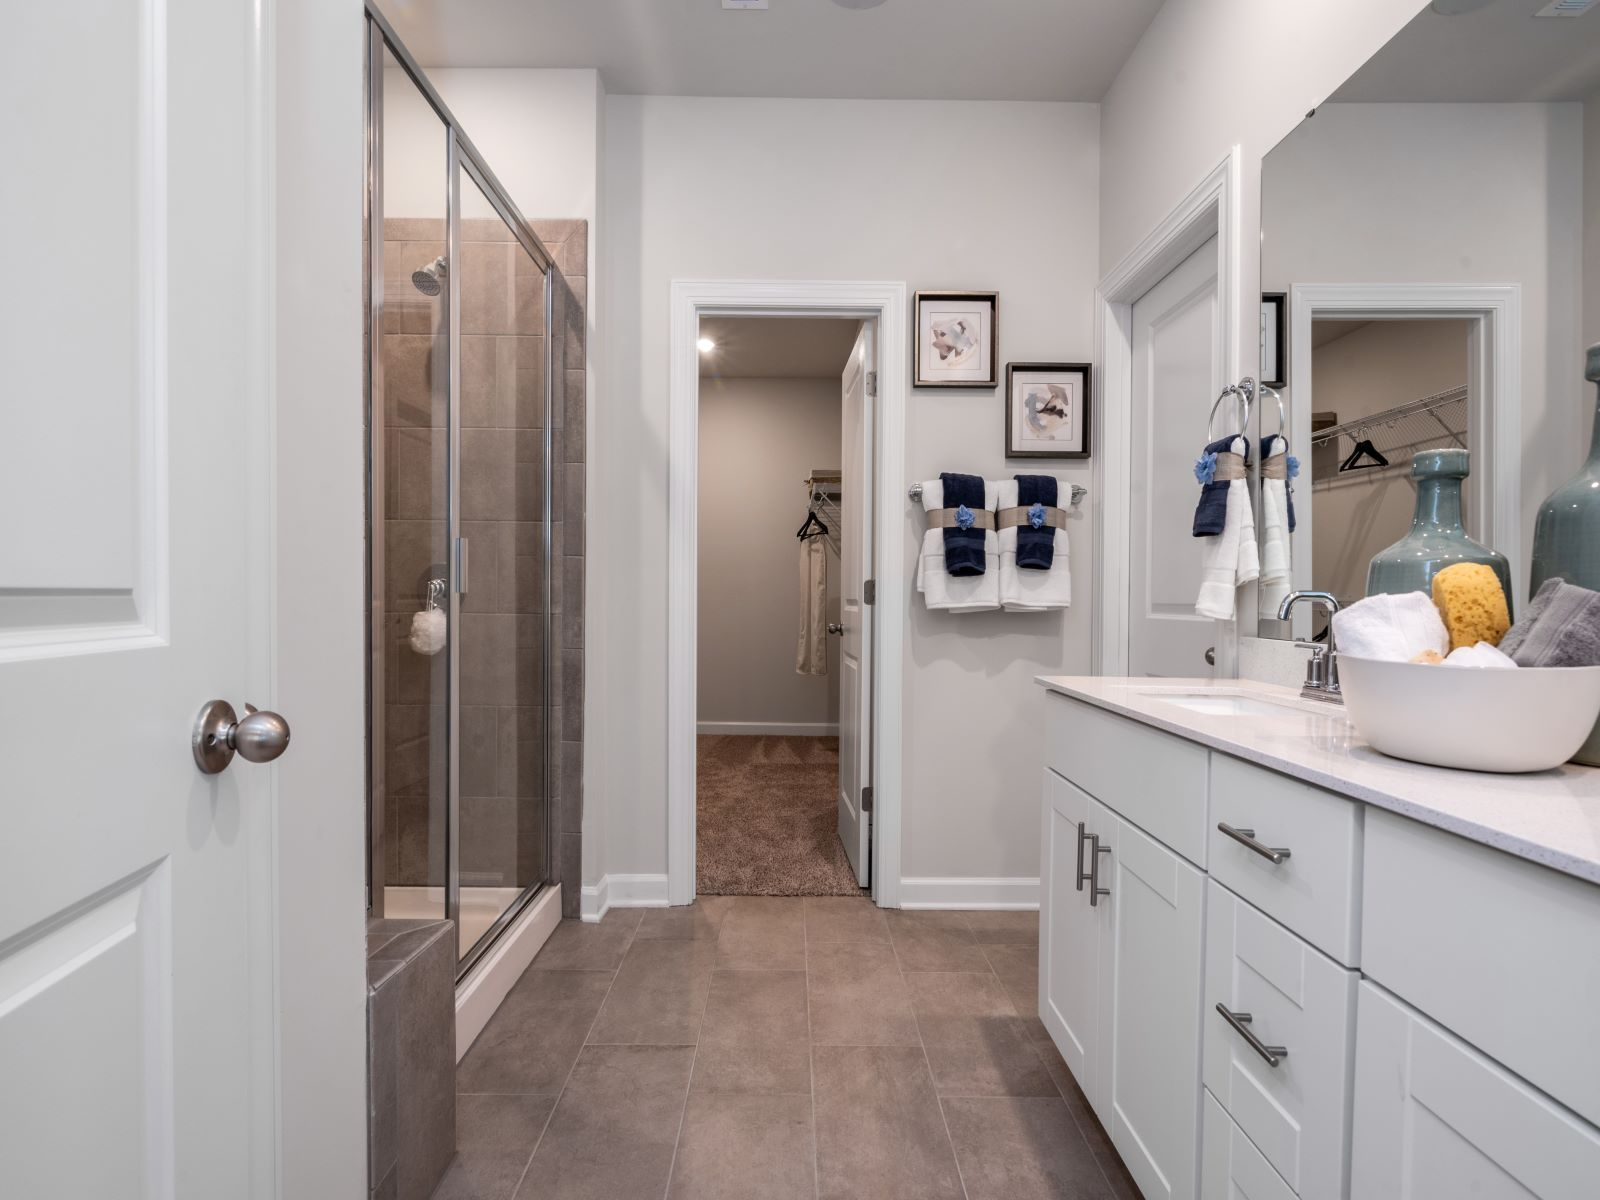 Bathroom featured in the Gibson Basement By Meritage Homes in Charlotte, NC